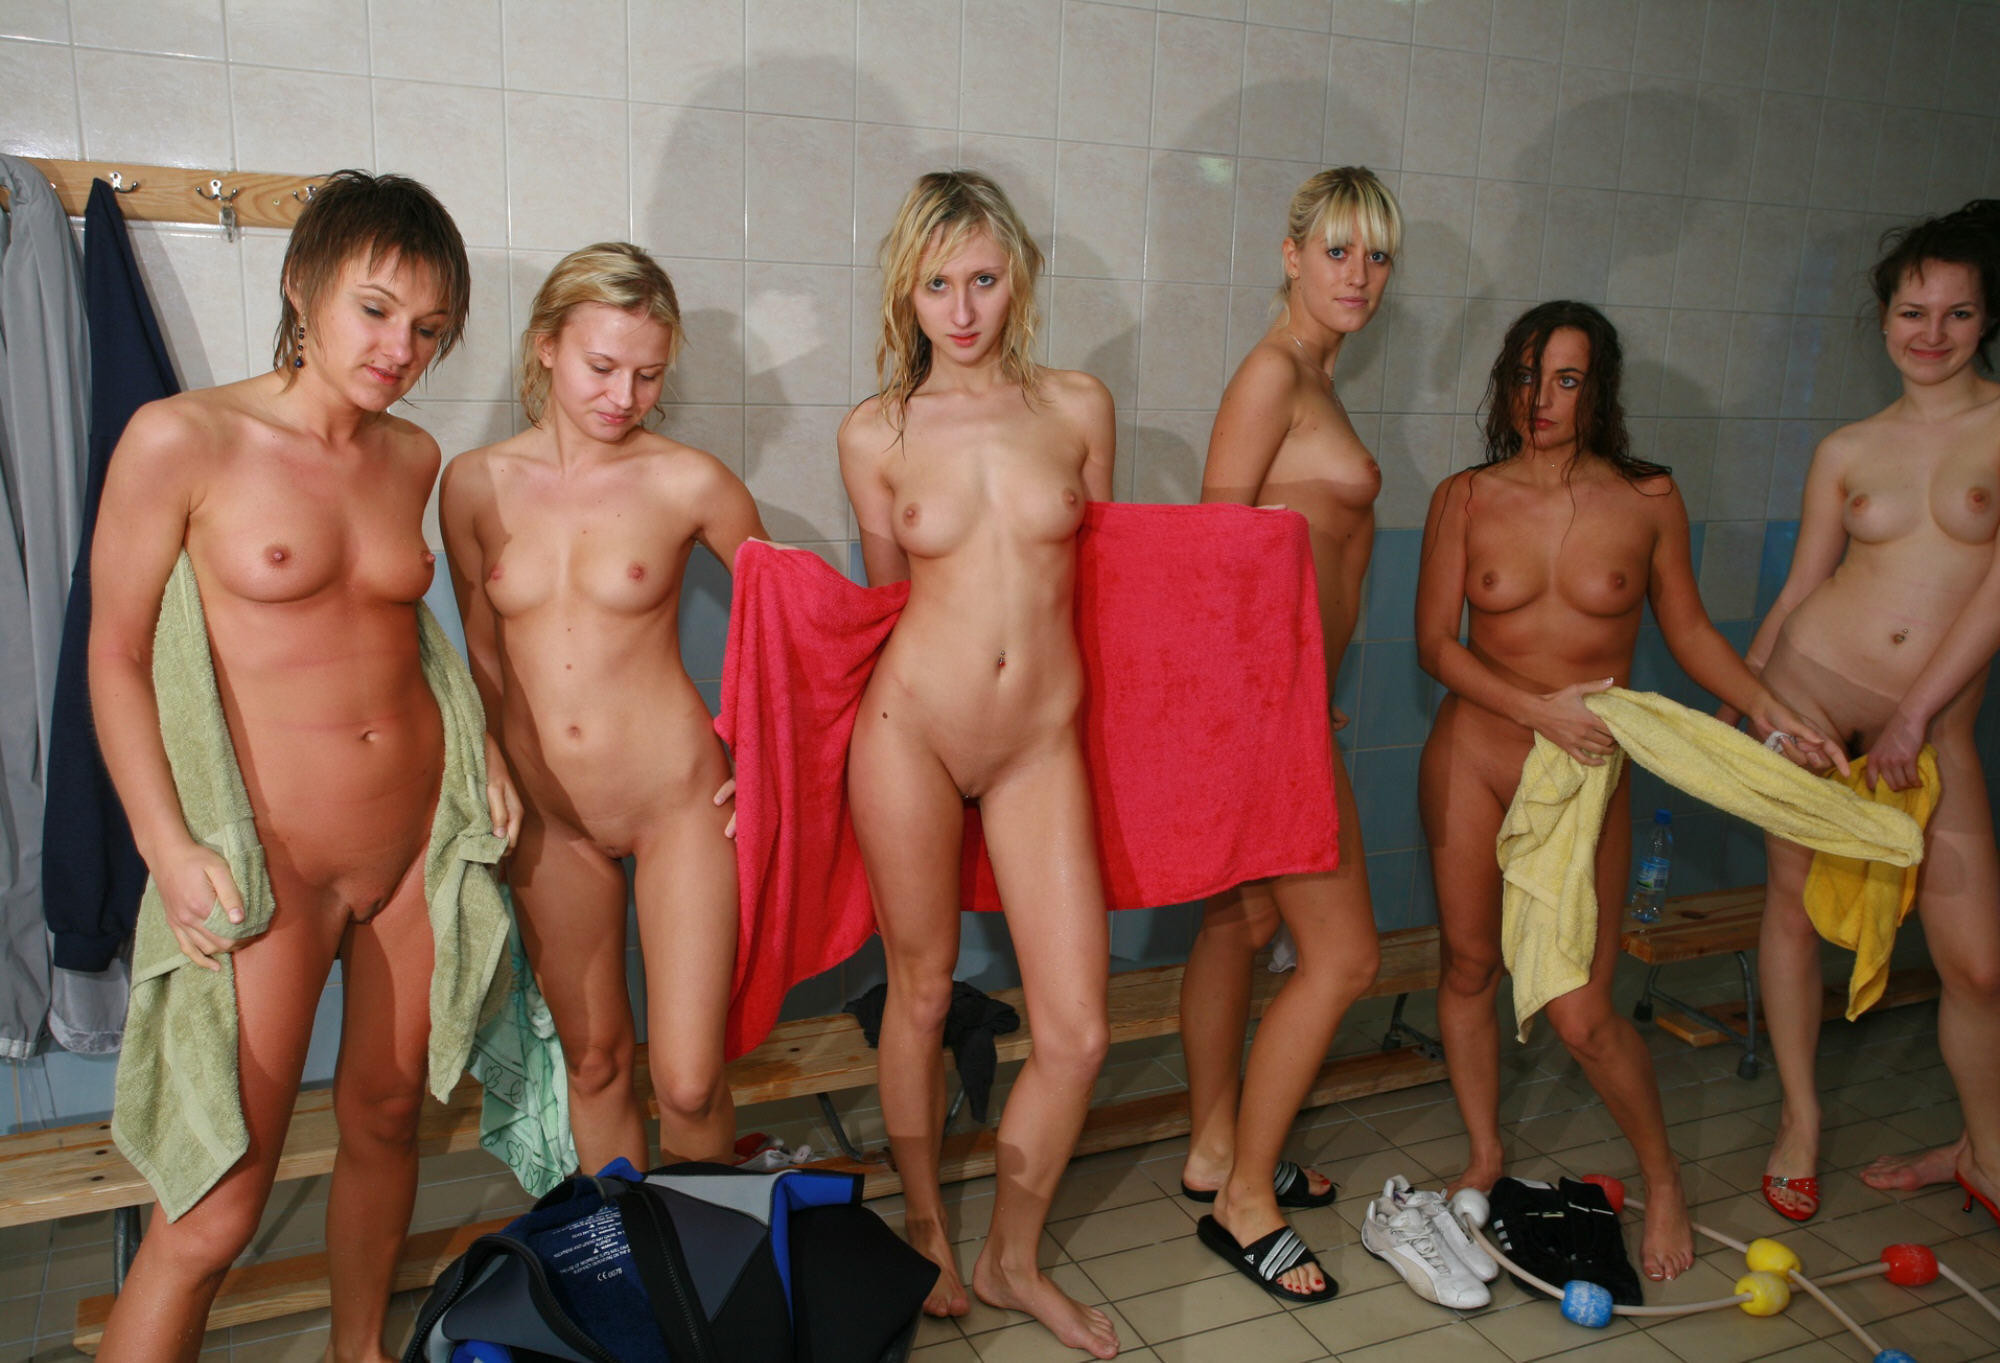 Nude changing room shower #10